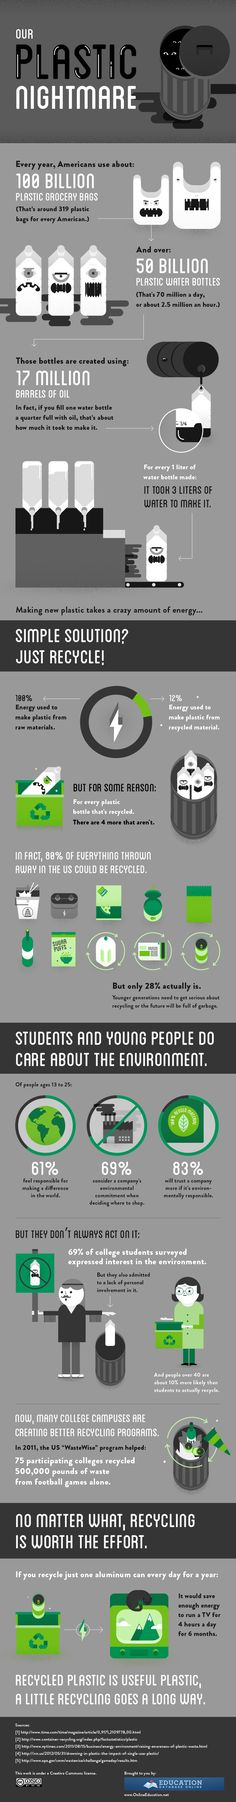 [Our Plastic Nightmare] #recycle #KAB #DoYourPart #BeInformed